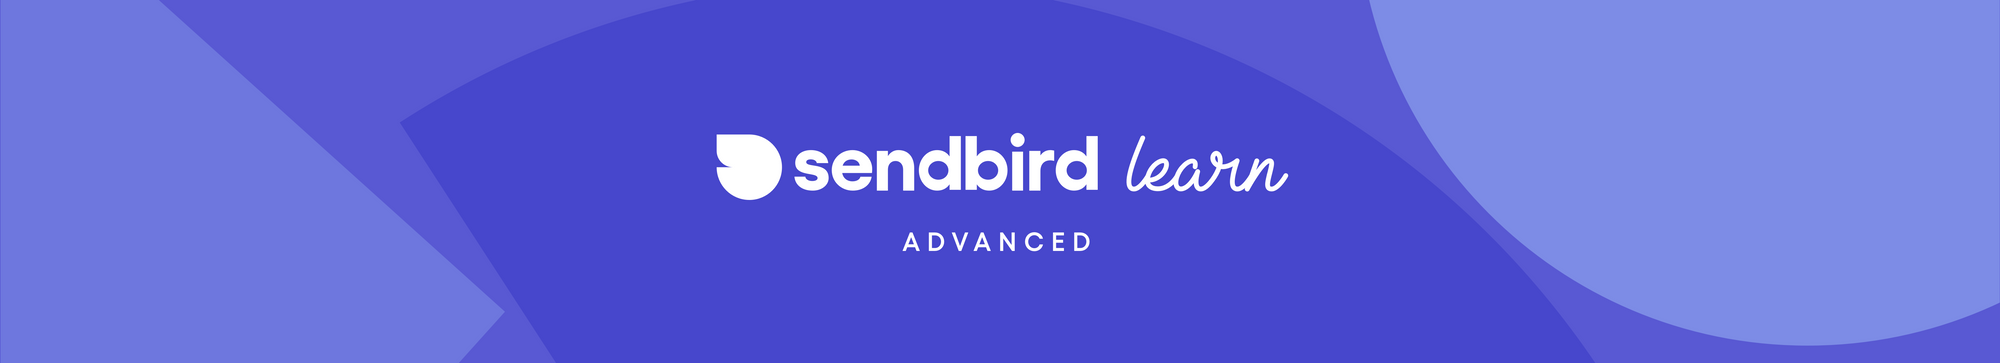 Sendbird_learn_advanced_main.png